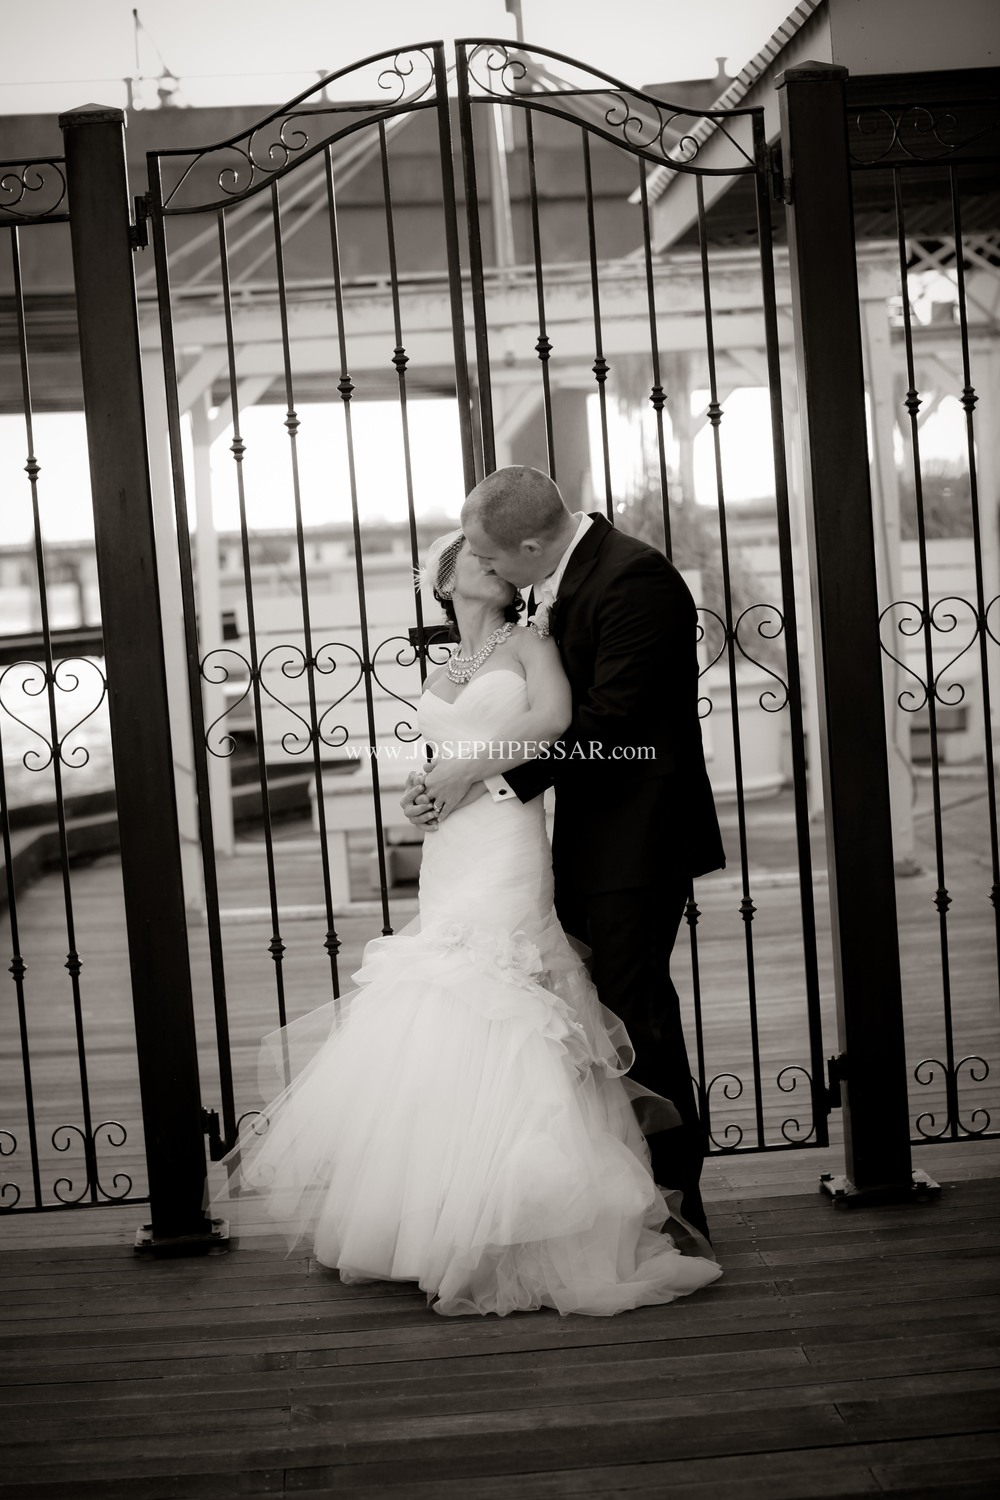 nyc_wedding_photographer0025.jpg